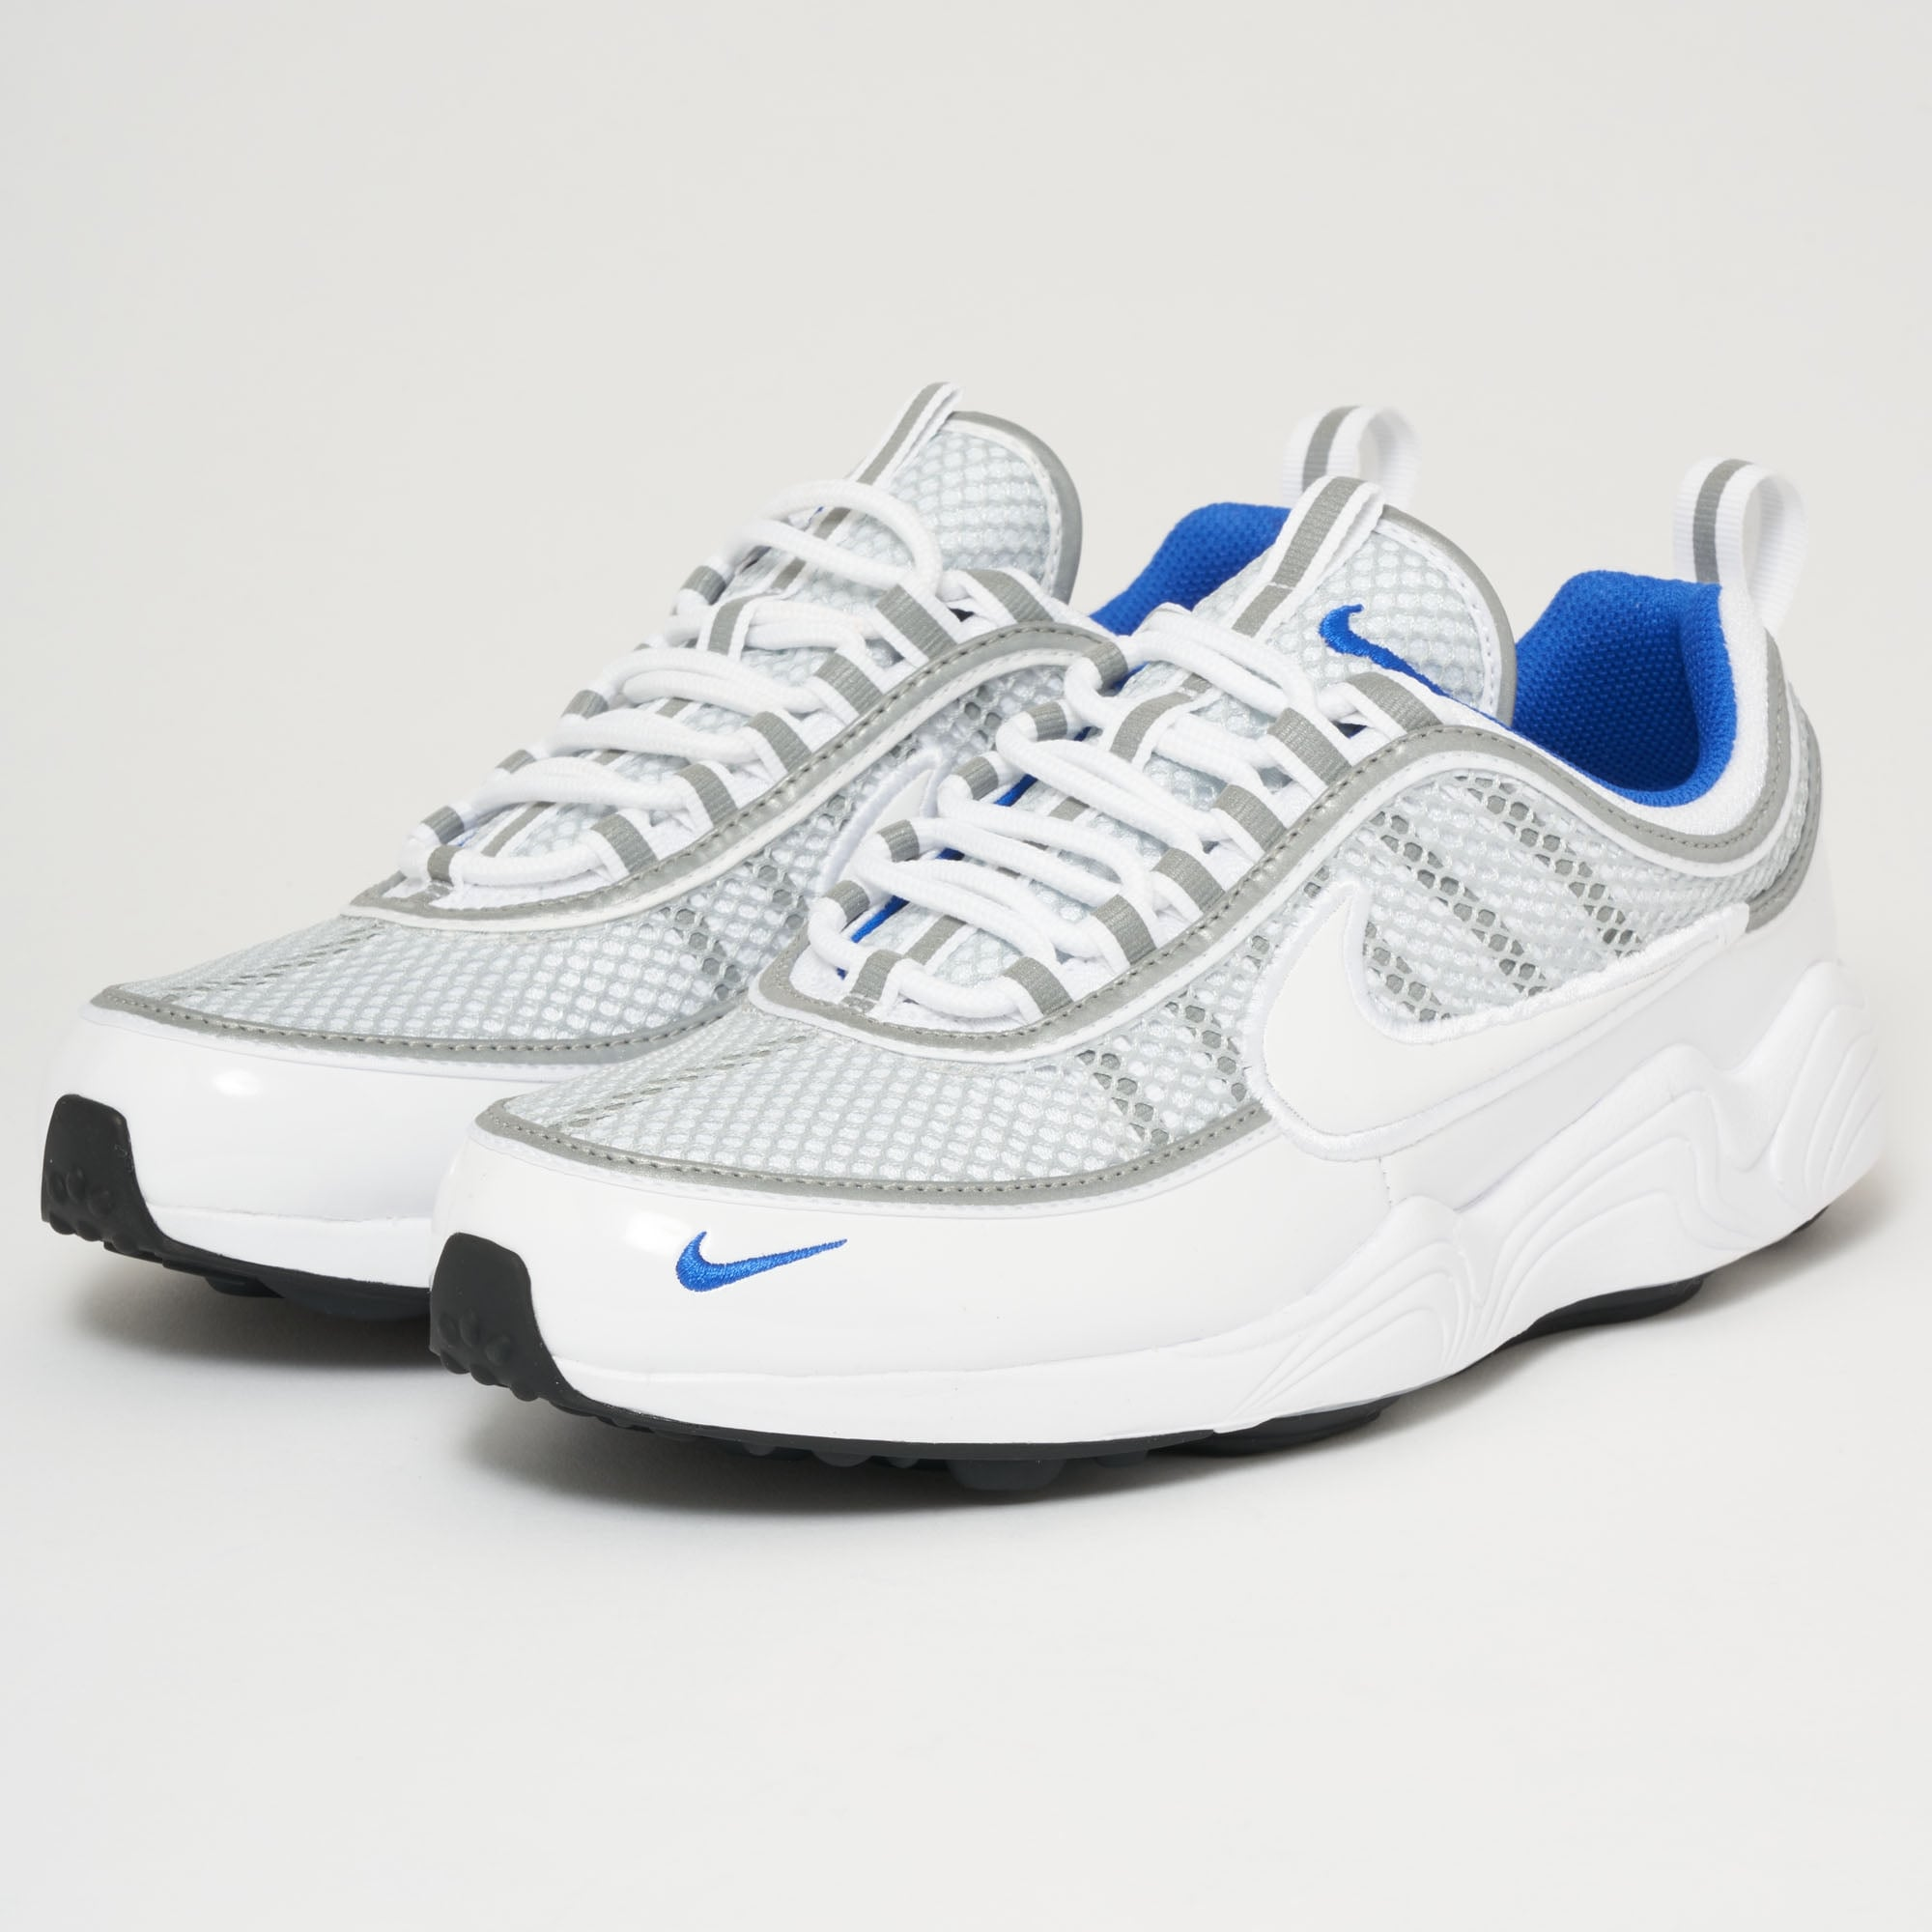 air zoom spiridon 16